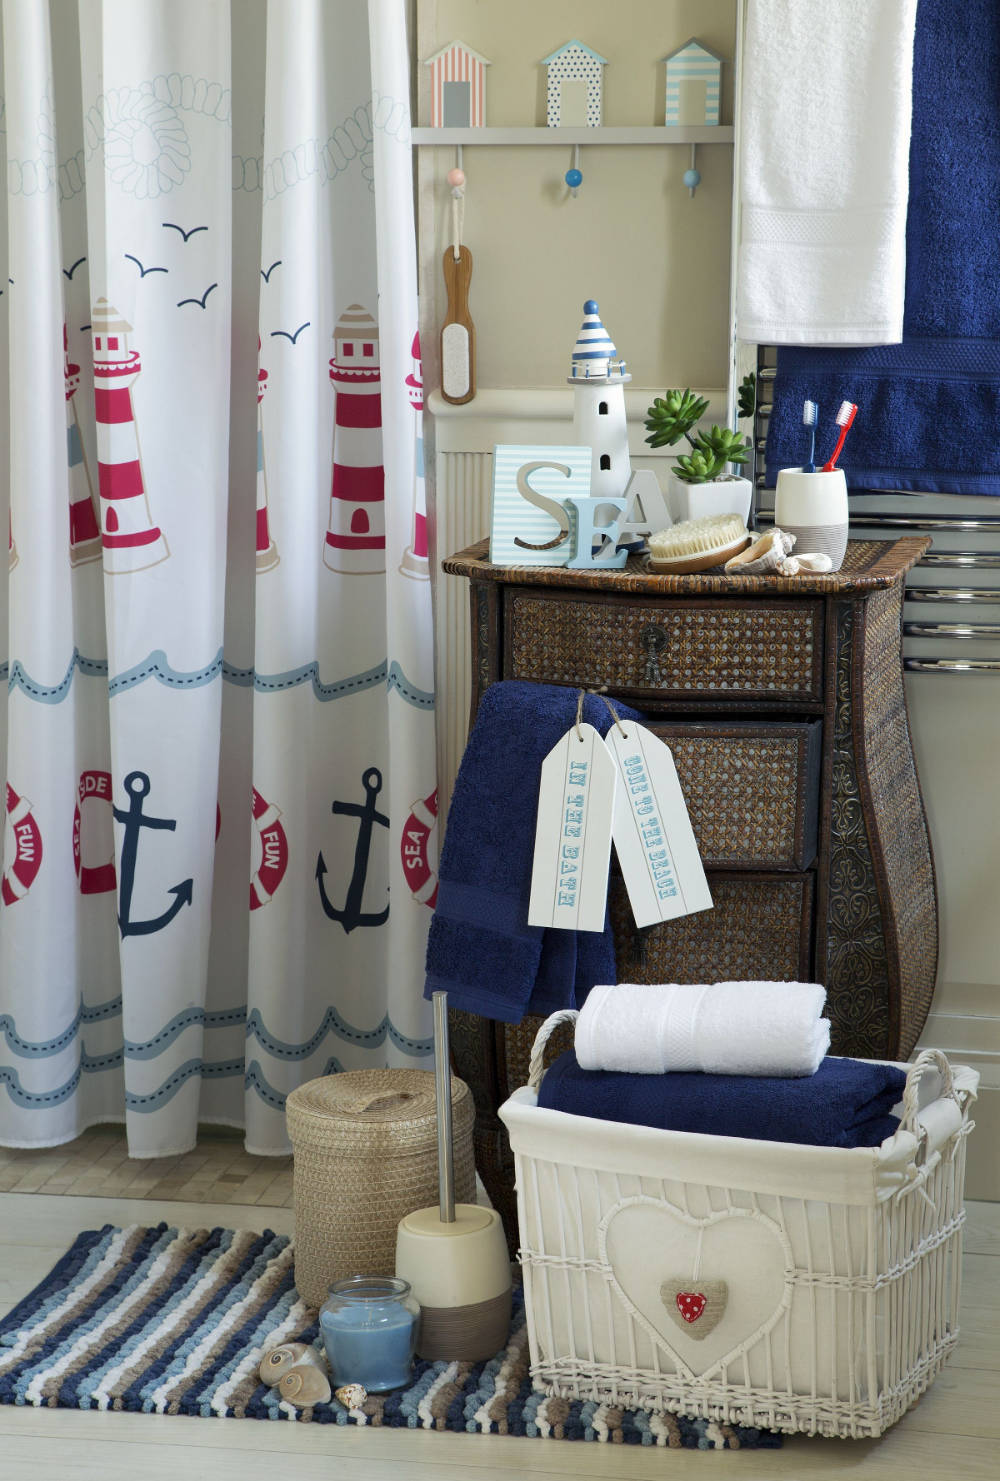 lighthouse themed bathroom decor in 6  Kid bathroom decor